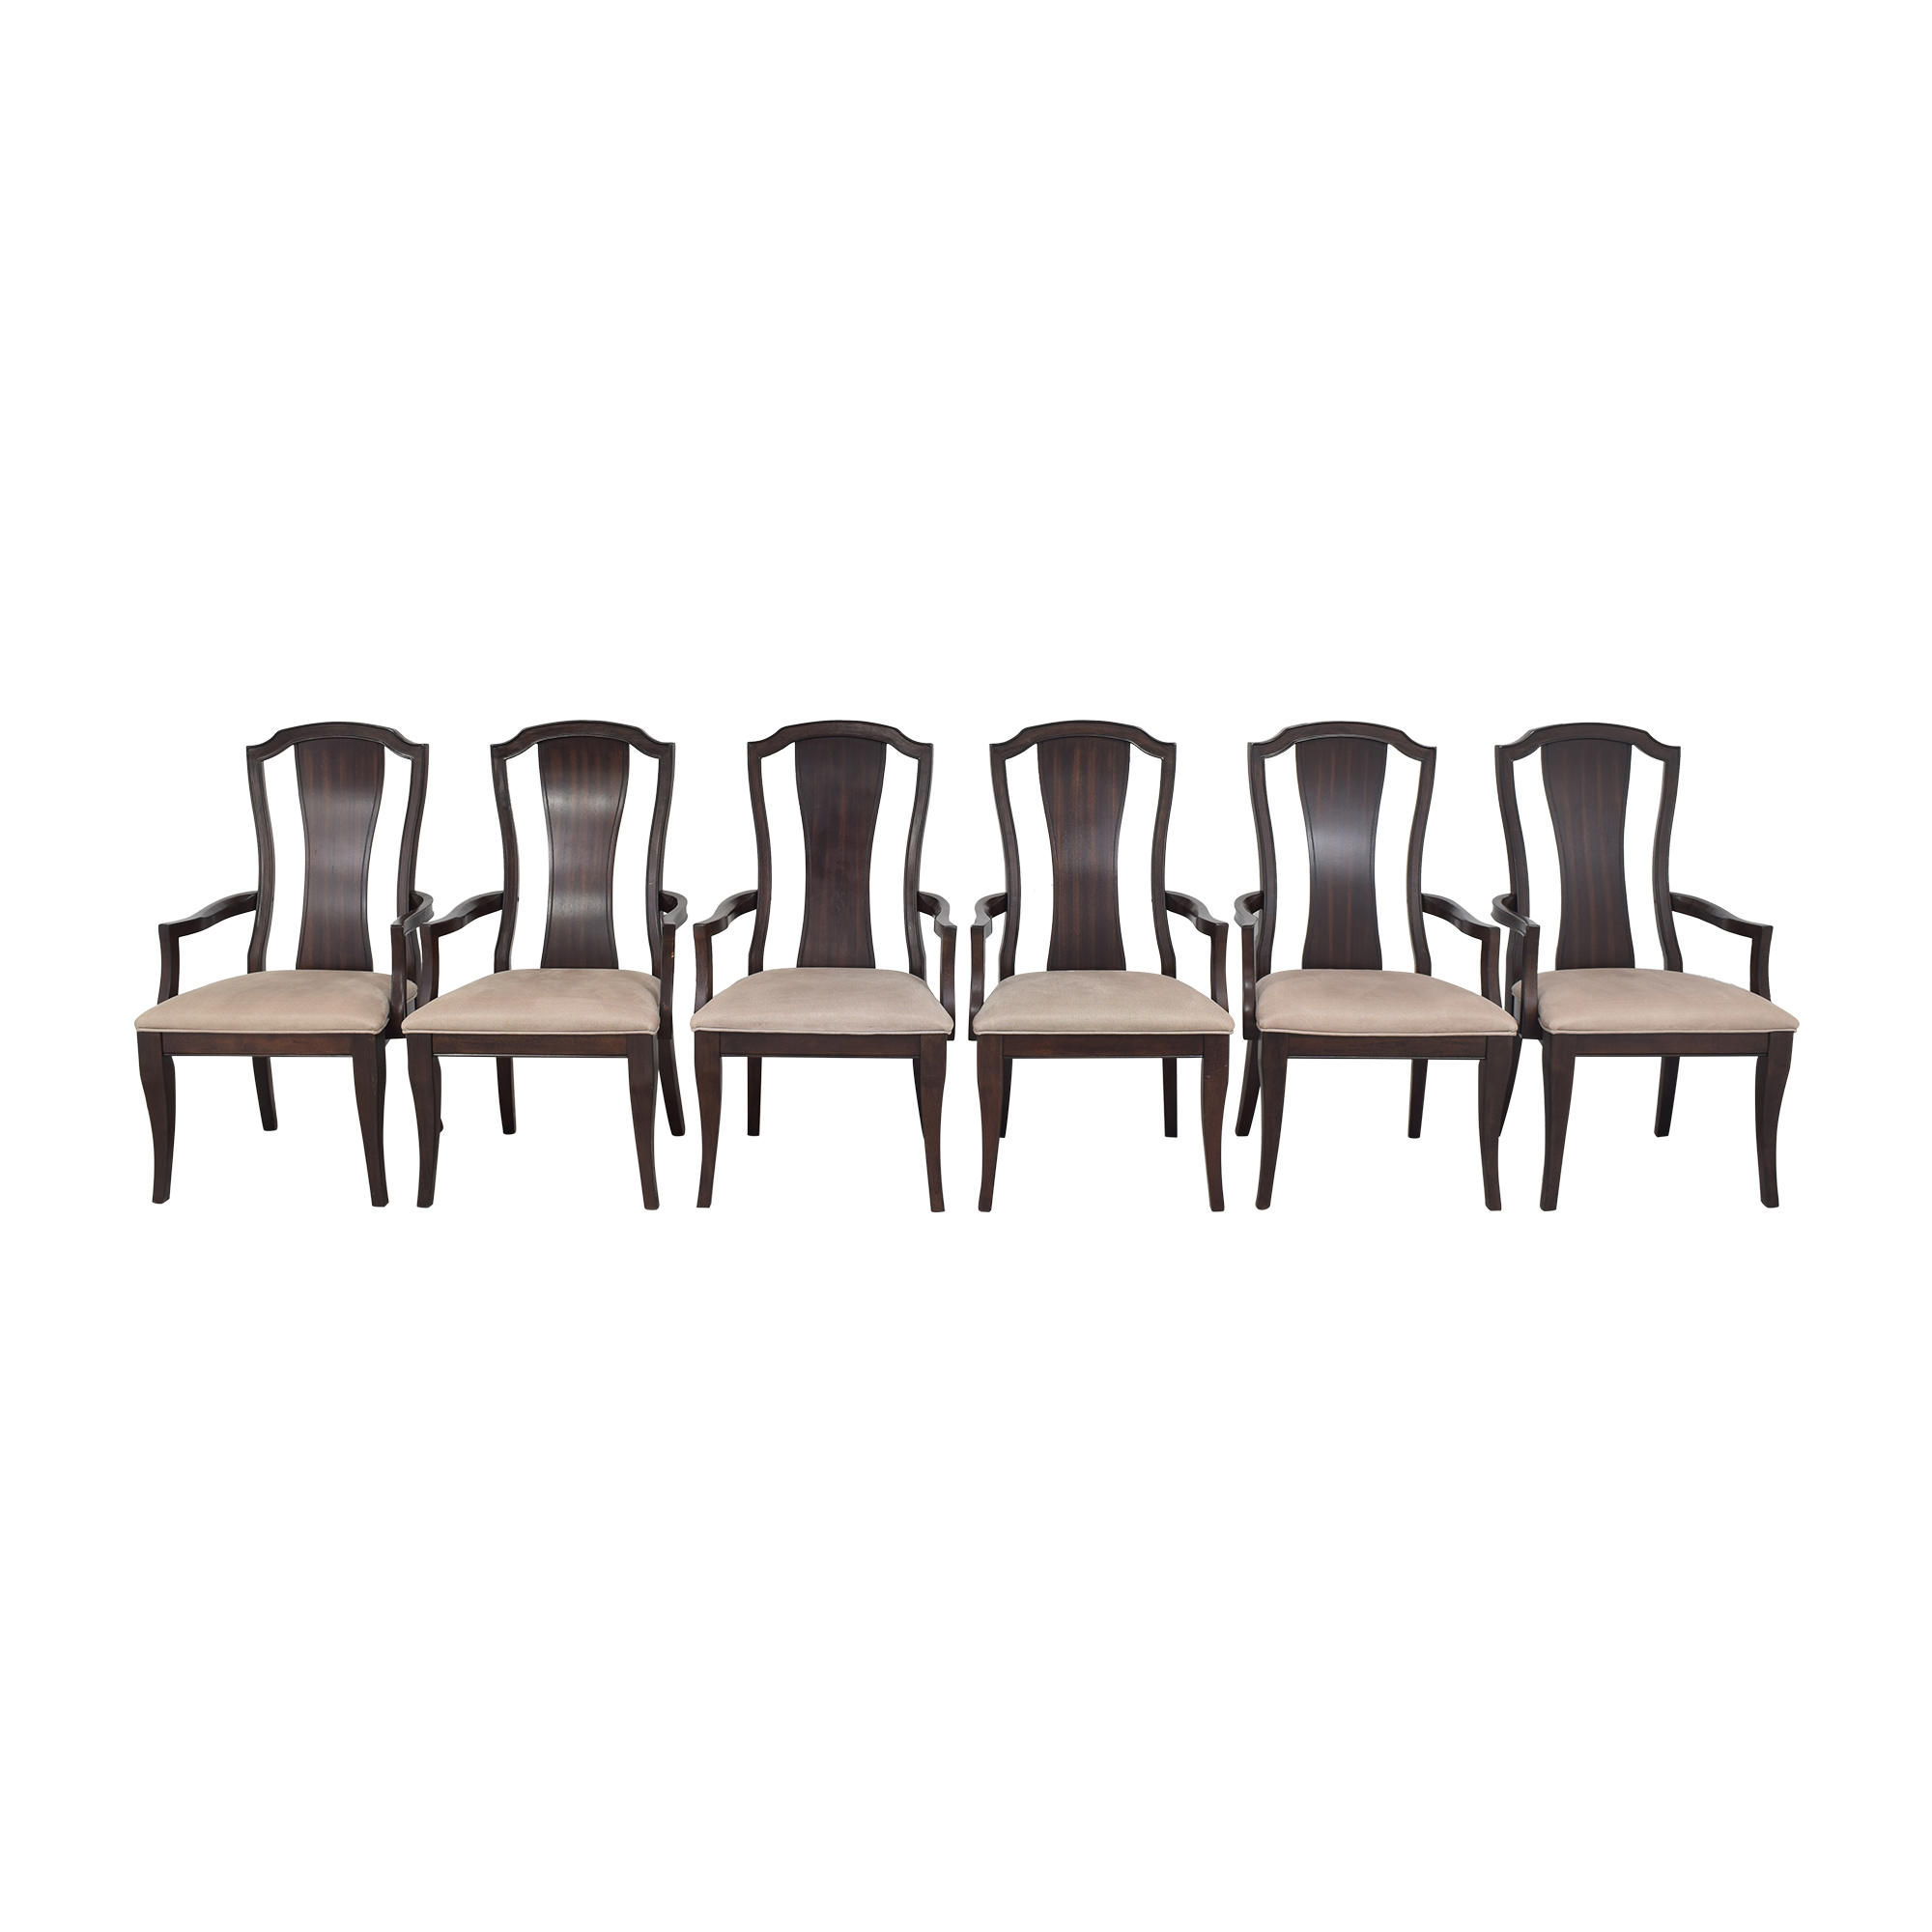 Legacy Classic Furniture Legacy Classic Dining Arm Chairs light and dark brown